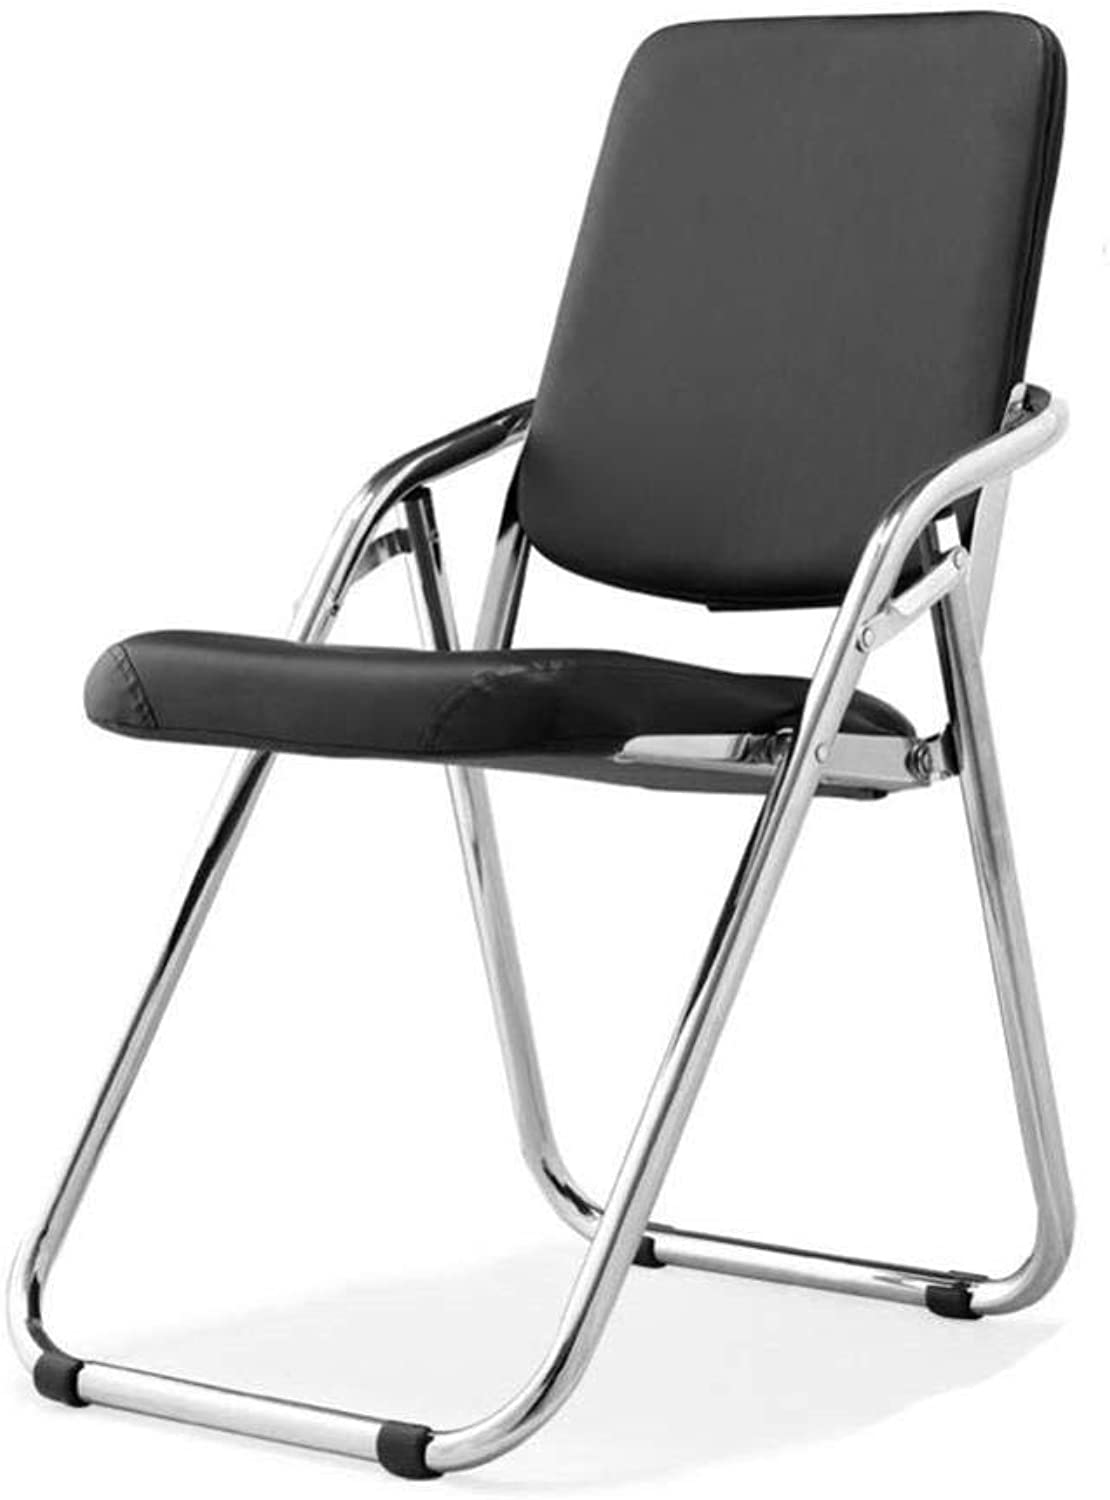 FENGFAN Folding Chairs Visitor Conference Steel Leather Comfort Guest Chairs Cantilever Frame Padded Seat and Back Rest (color   Black)